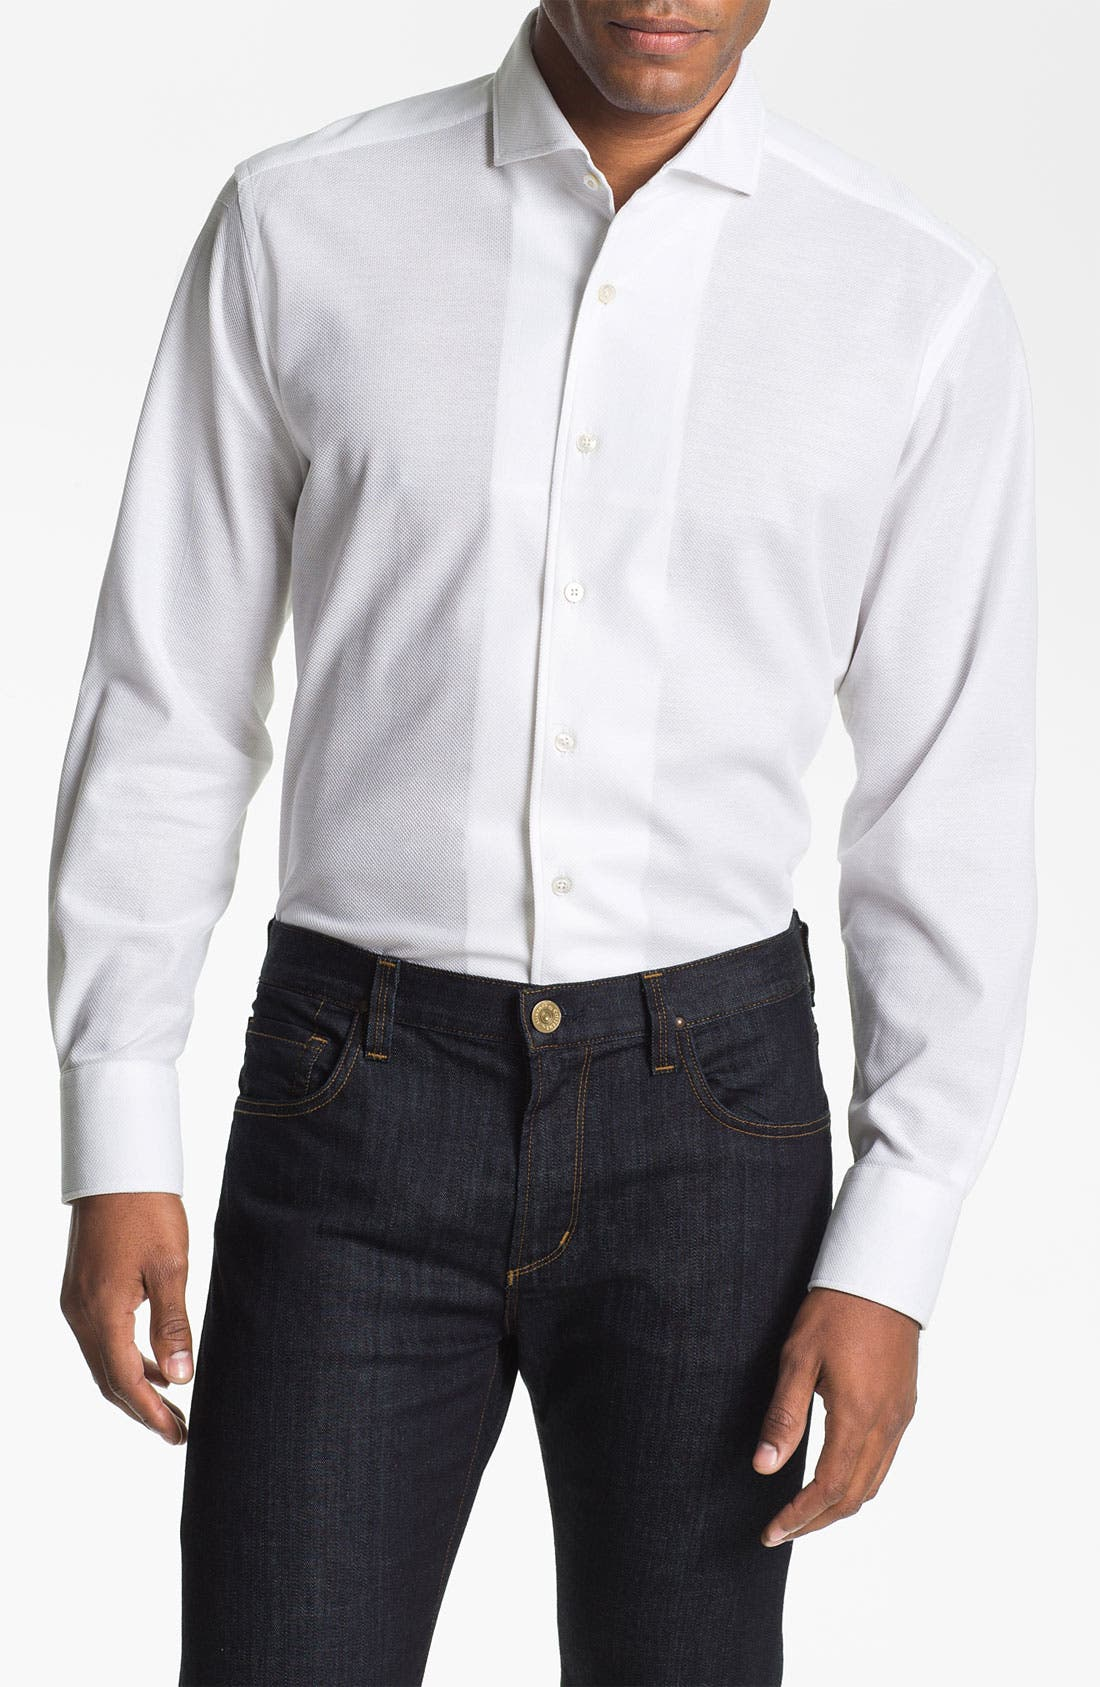 Main Image - Canali Regular Fit Knit Italian Sport Shirt